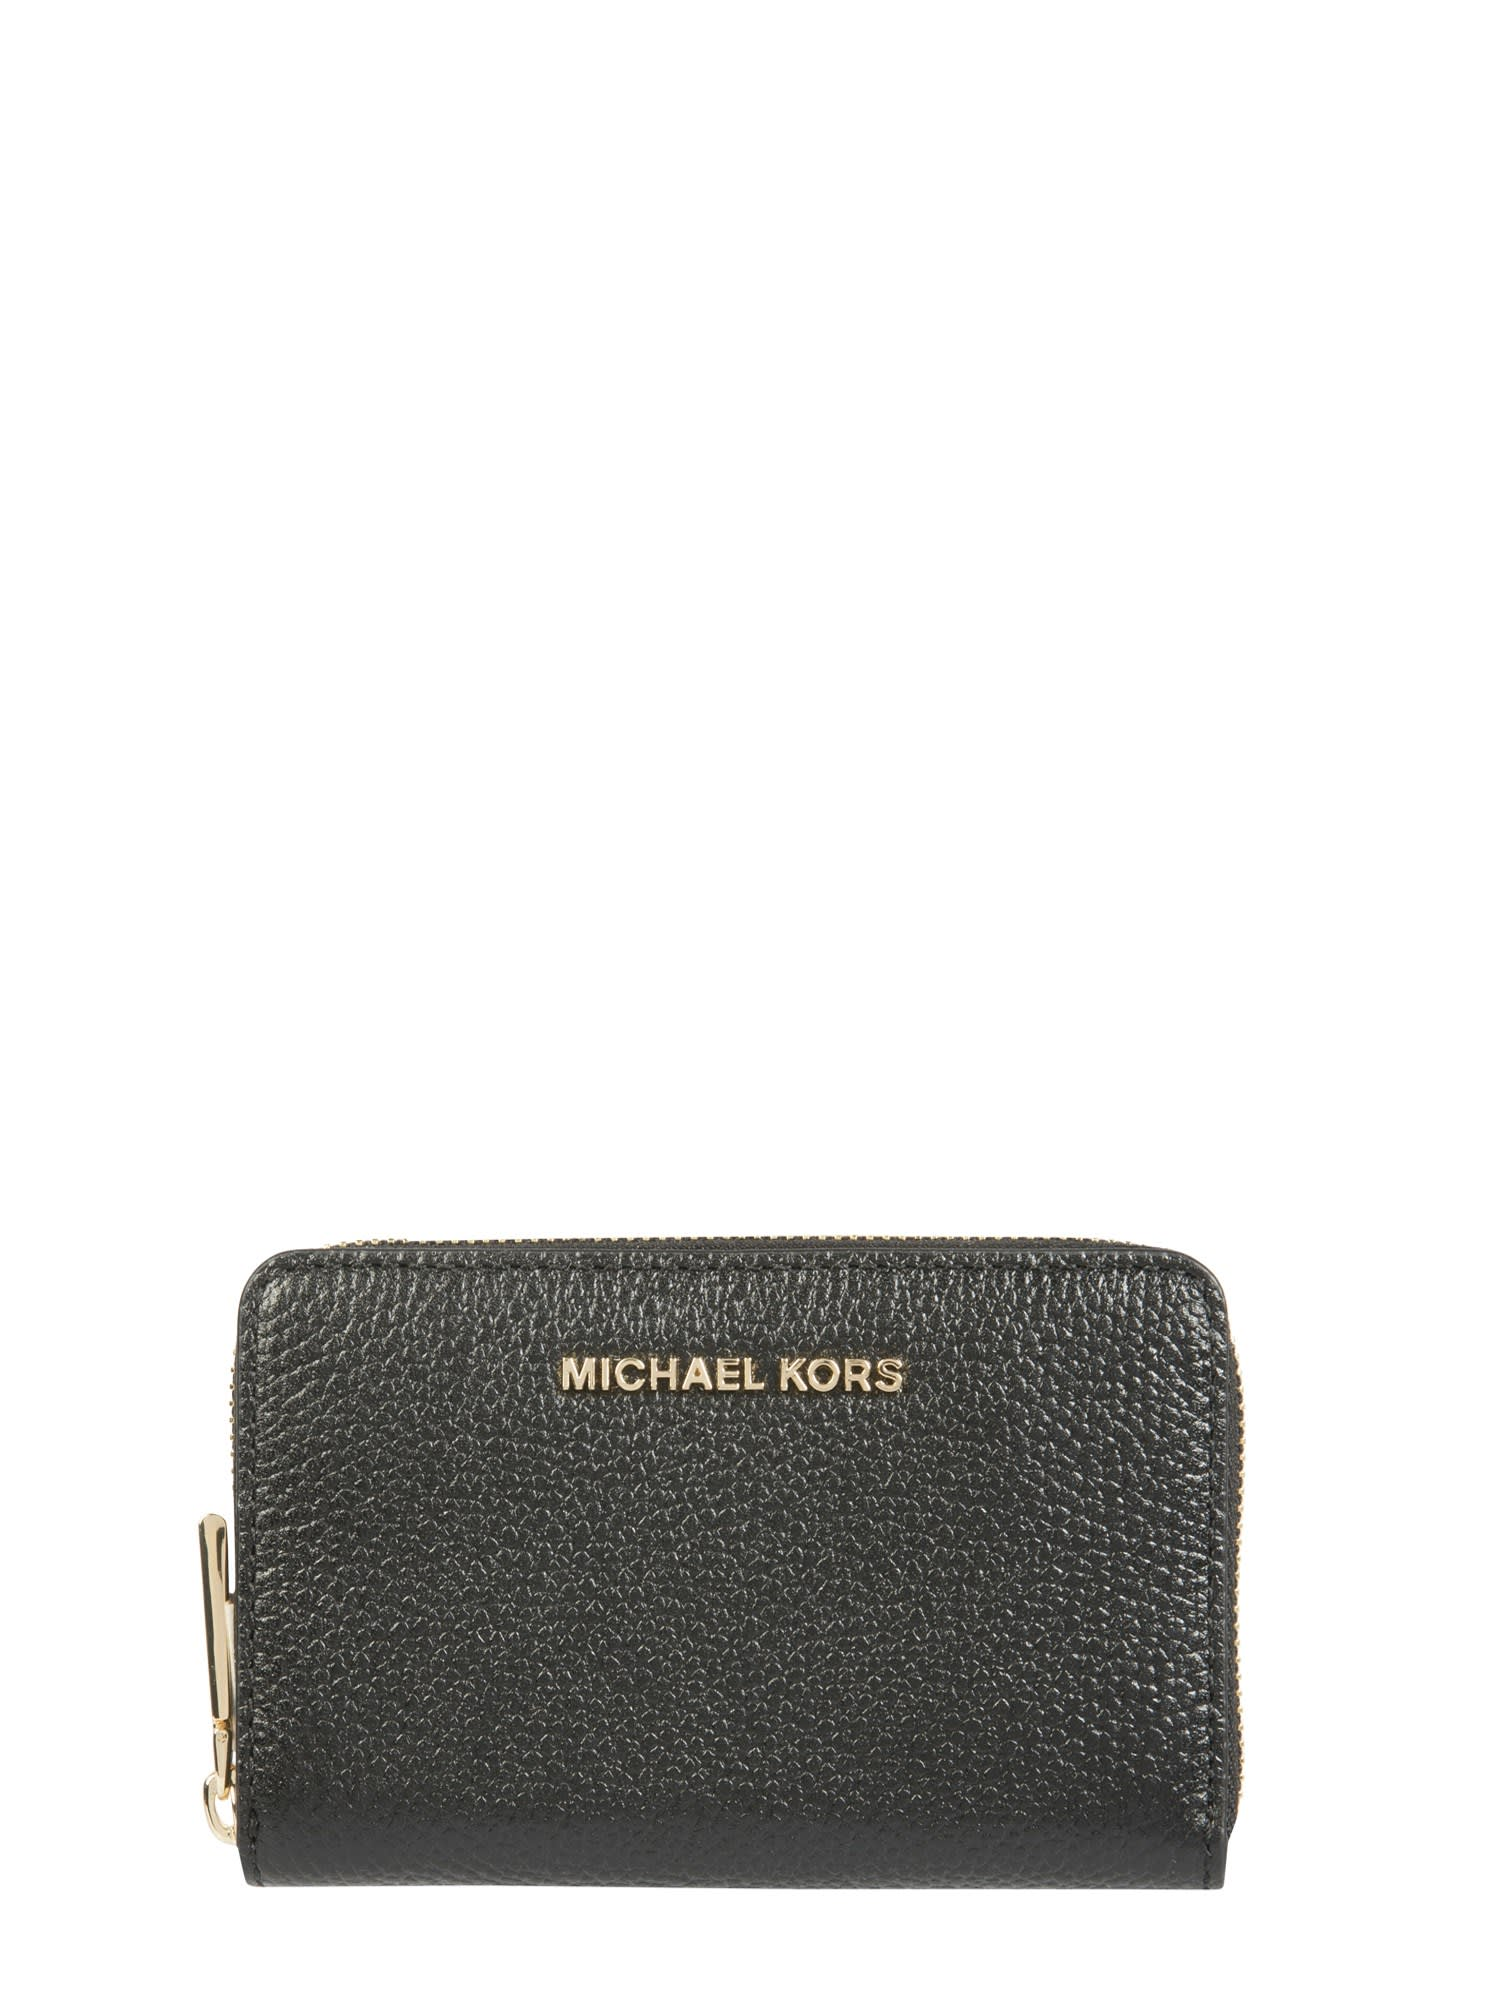 Michael Michael Kors COMPACT CARD HOLDER WITH LOGO